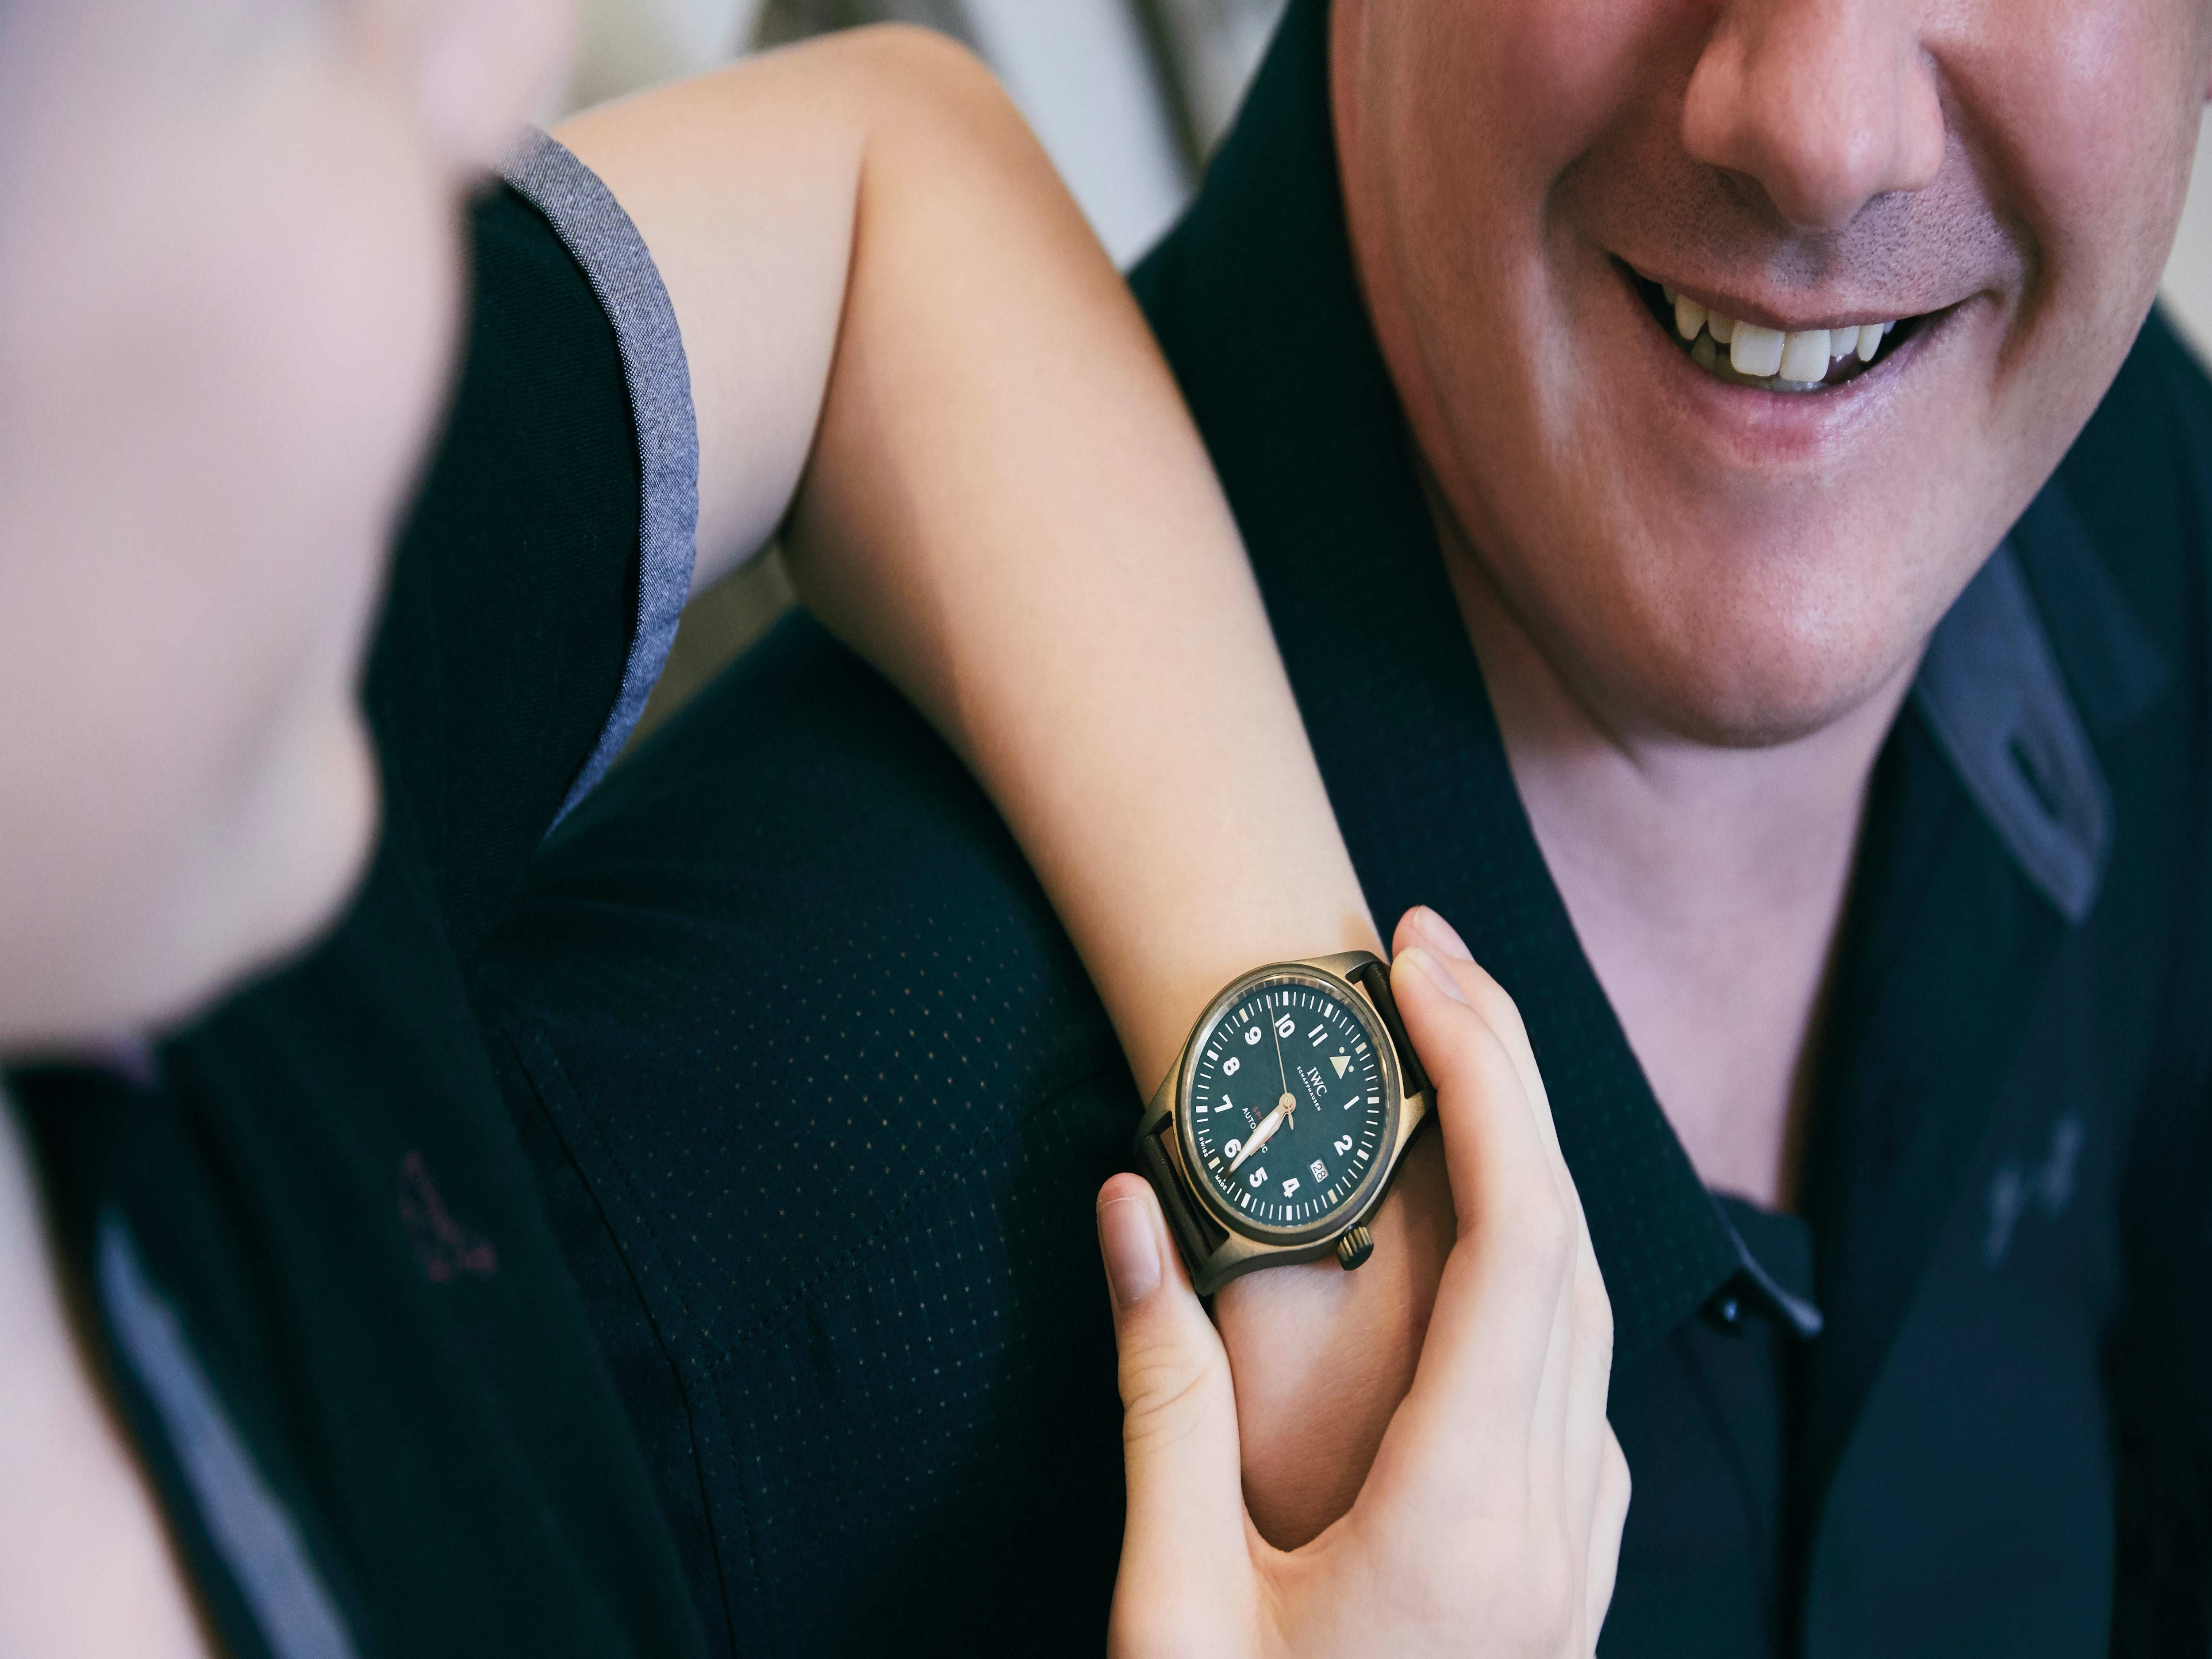 A.J. Ralph tries the IWC Pilot's Watch Automatic Spitfire (IW326802)